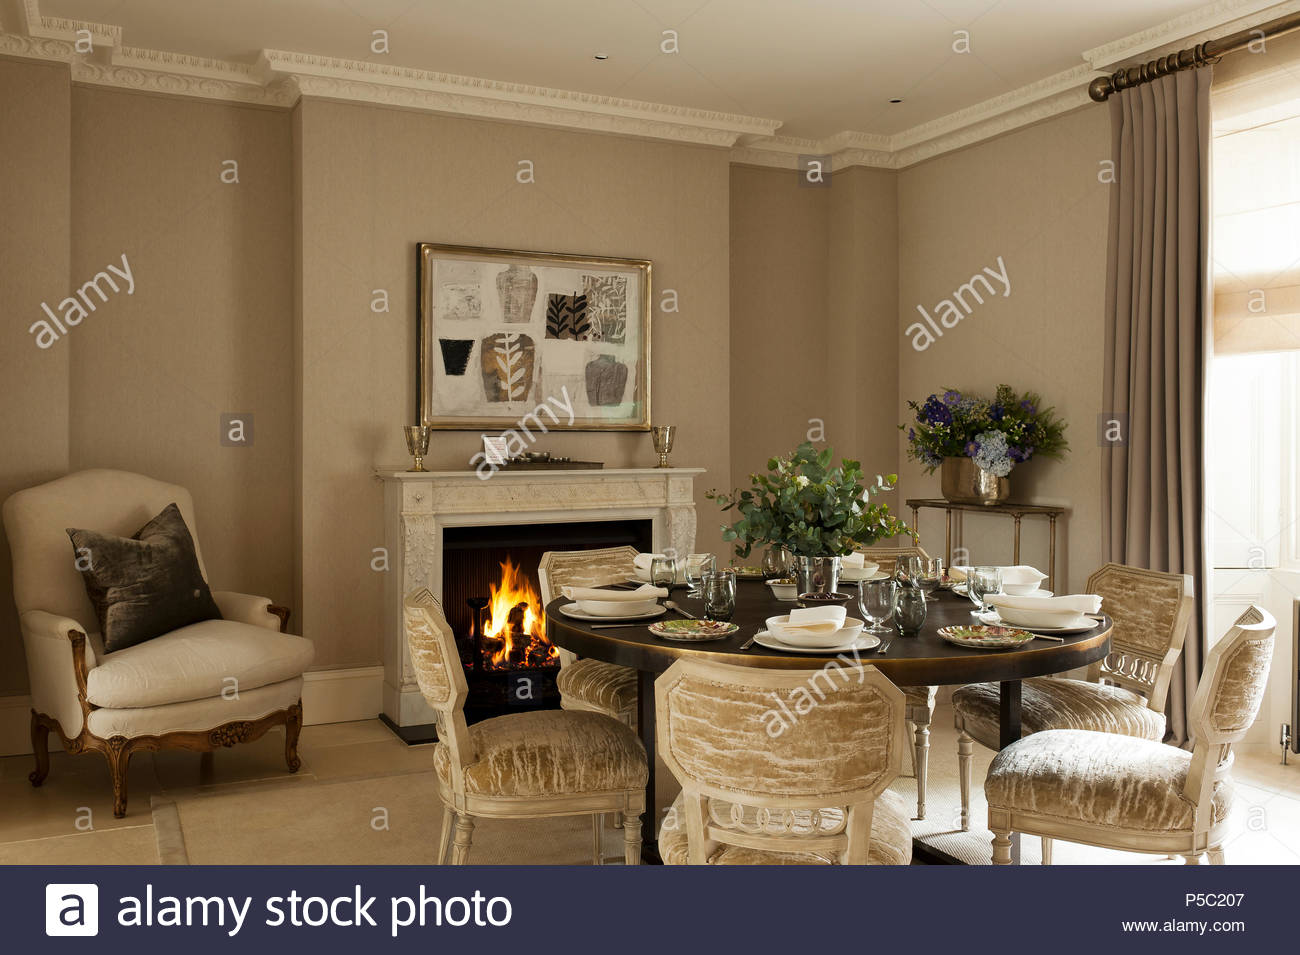 Country Style Dining Room With Lit Fire